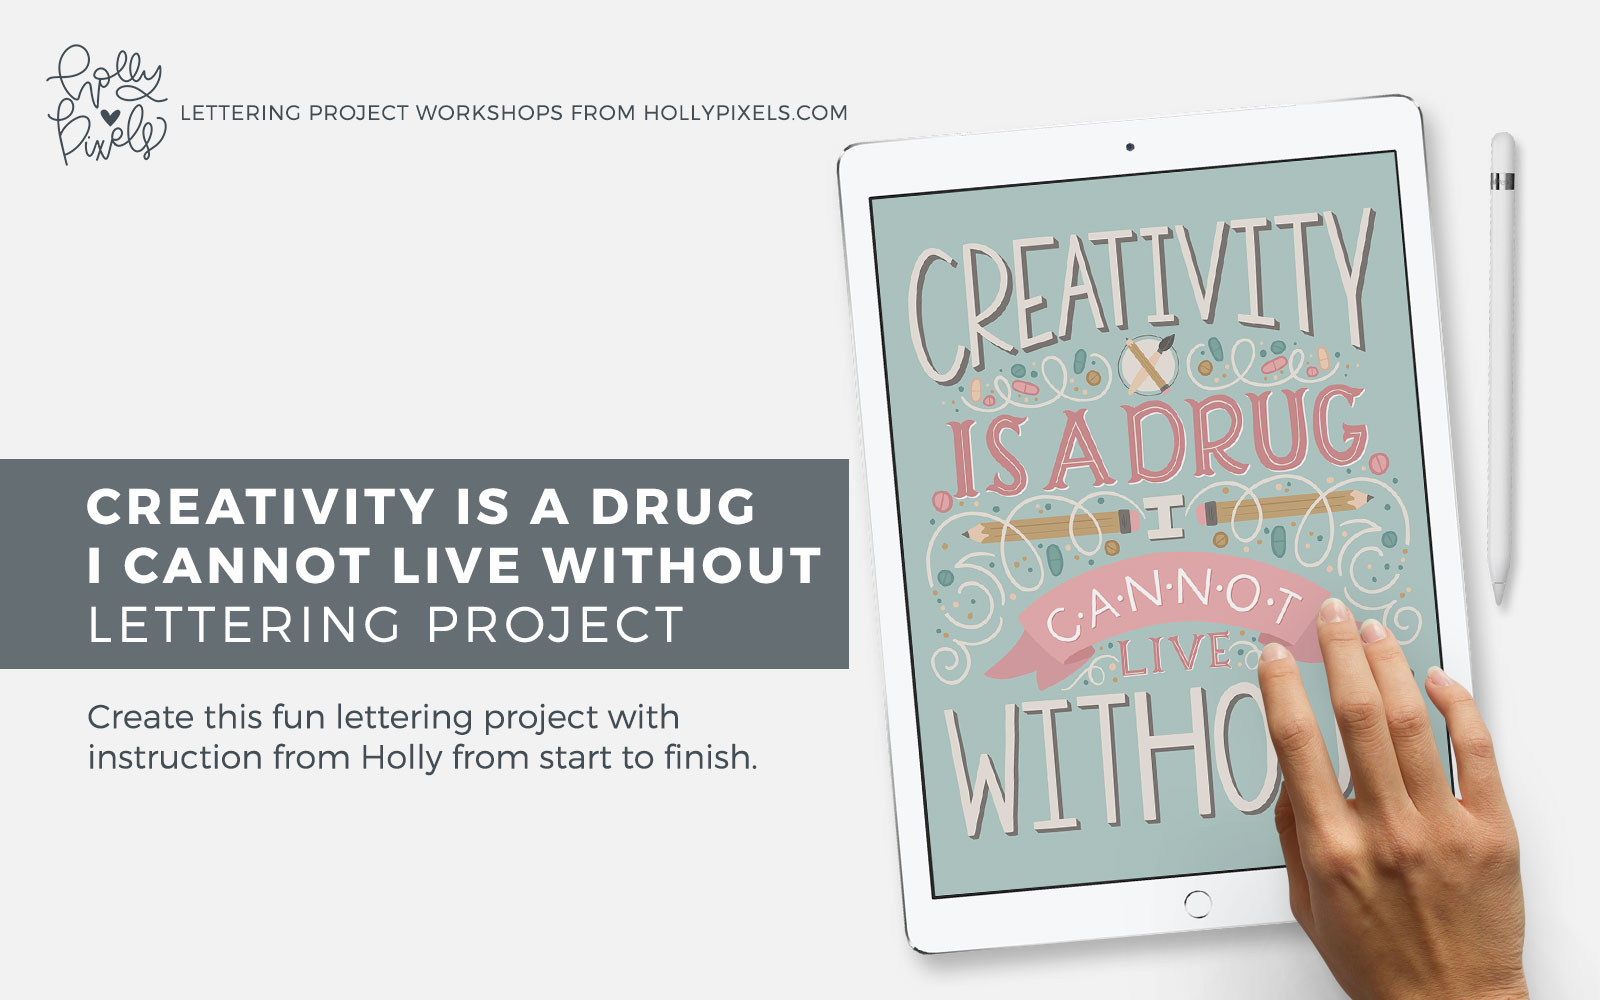 Learn hand lettering and build a portfolio with workshops from Holly Pixels. The Creativity is a Drug hand lettered workshop will help you improve your hand lettering skills with this detailed hand lettered piece instruction.